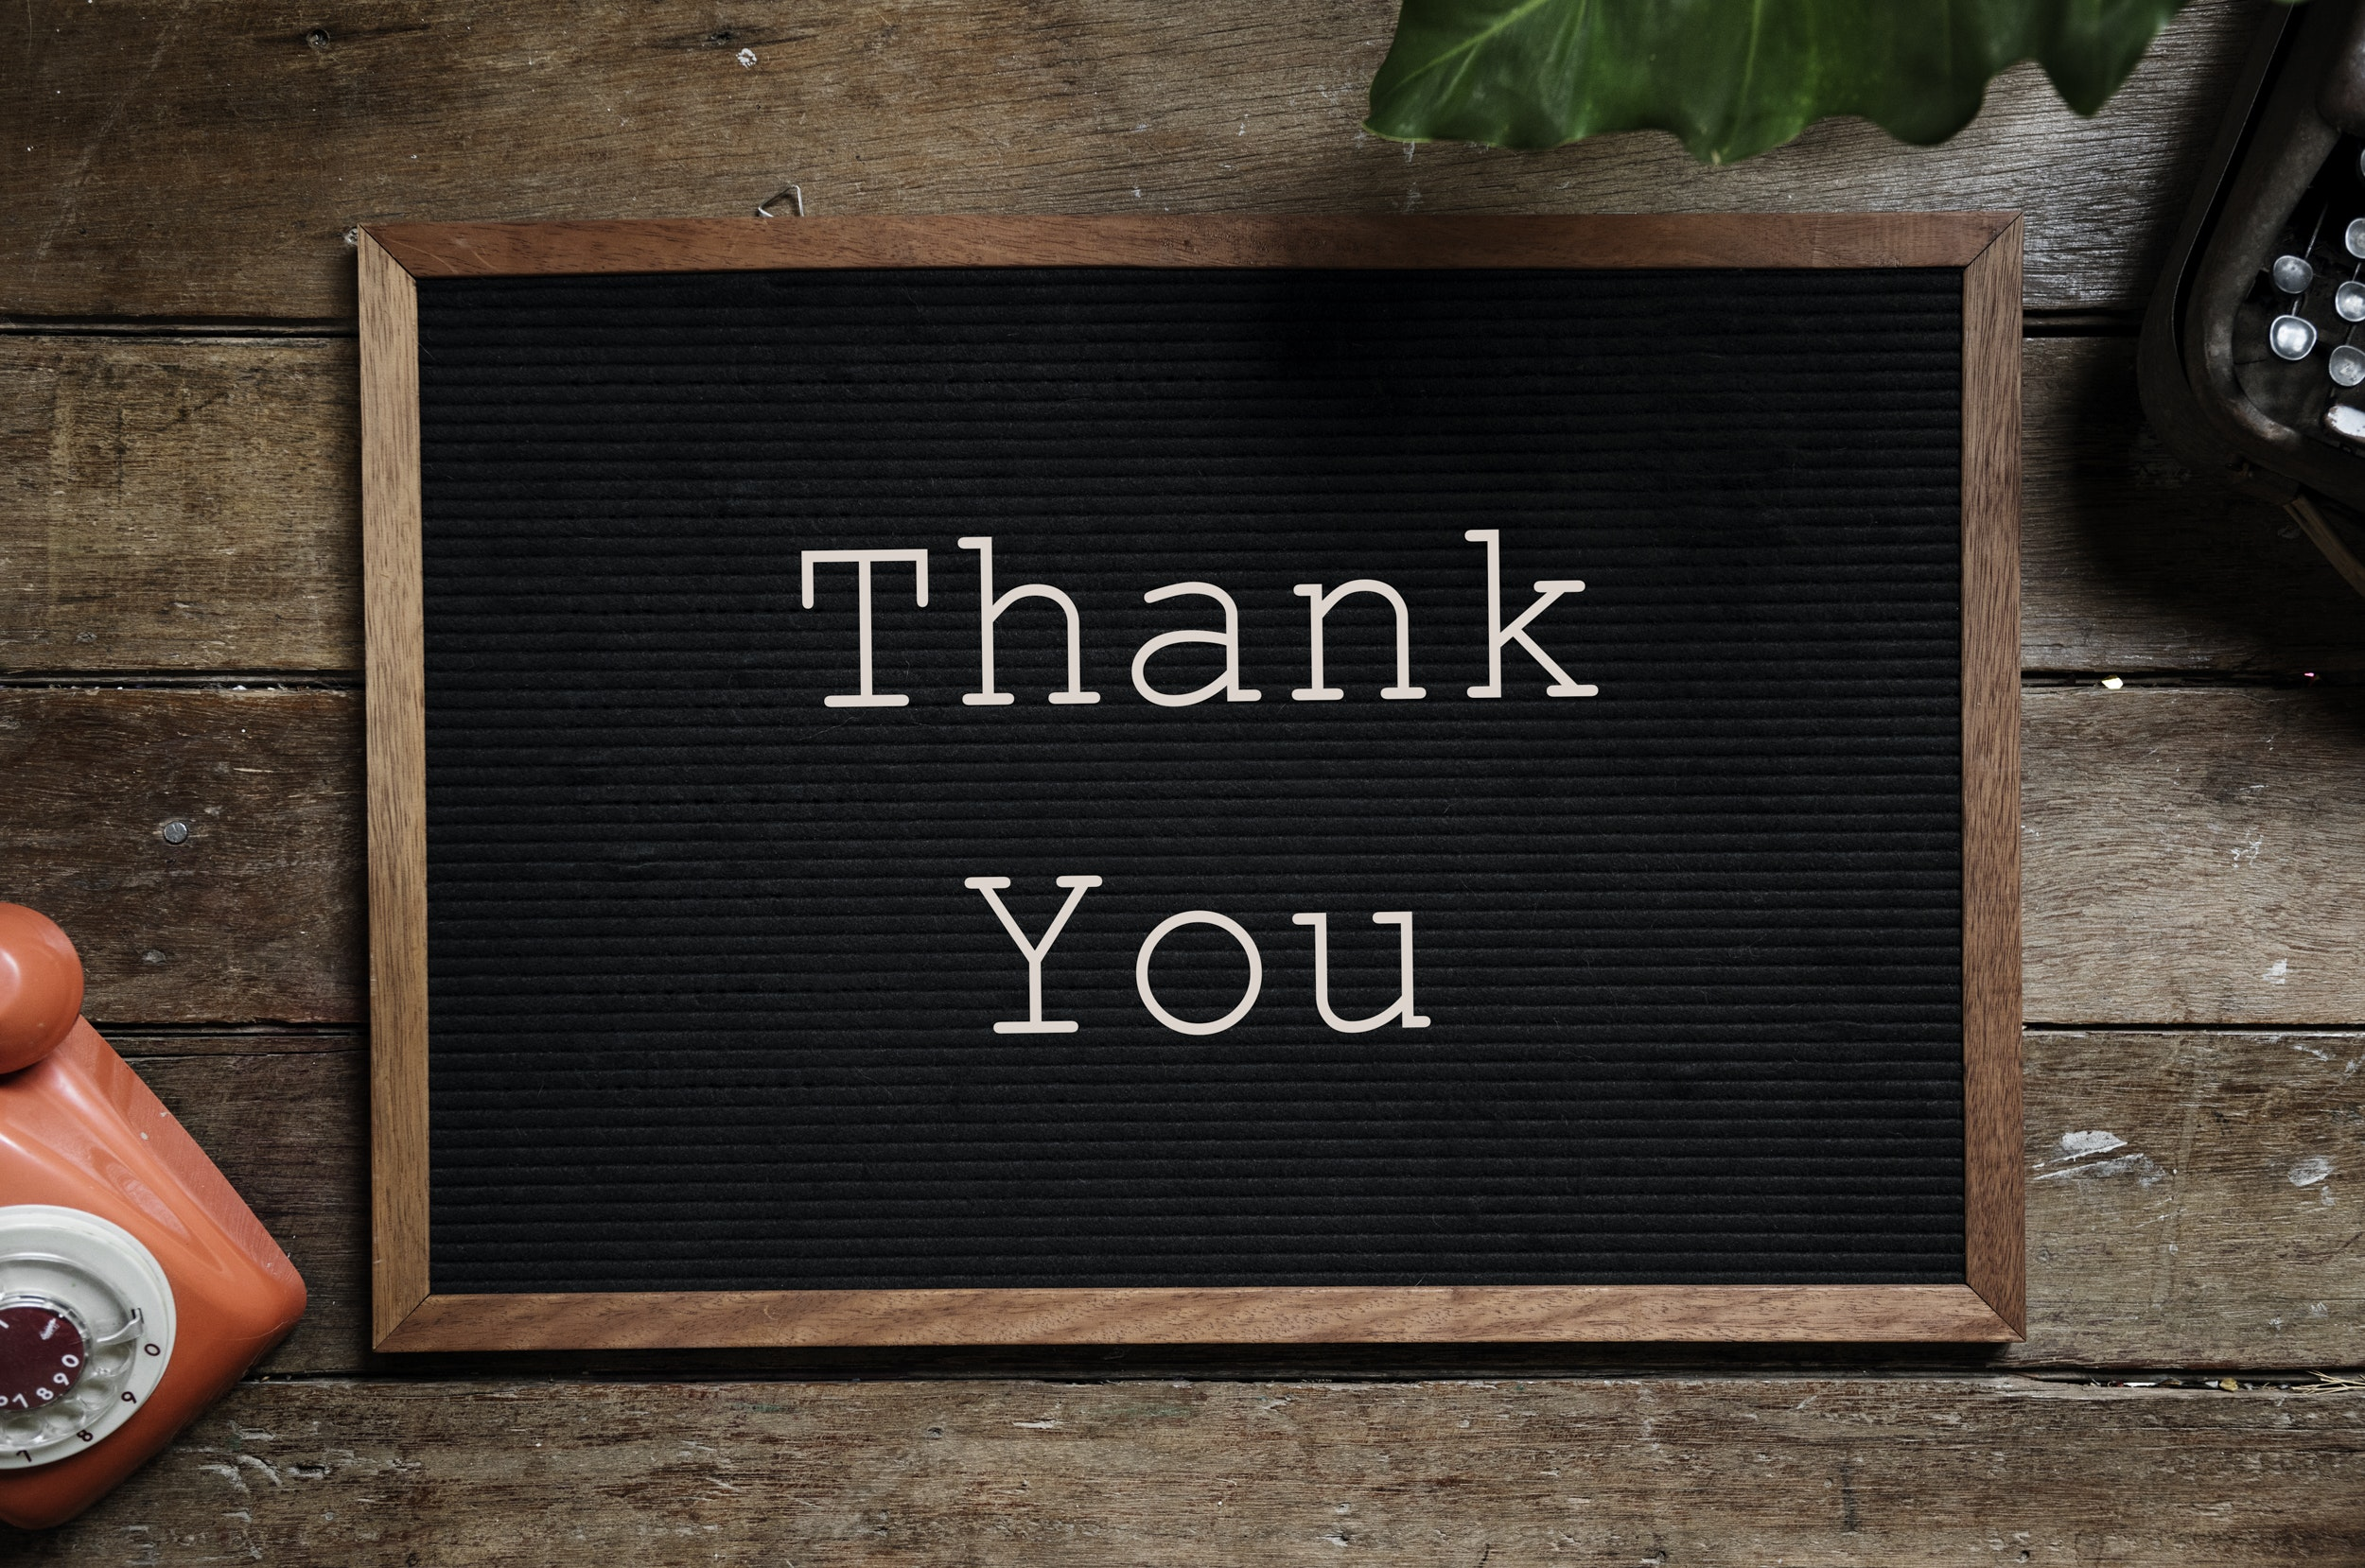 The importance of saying 'thank you'